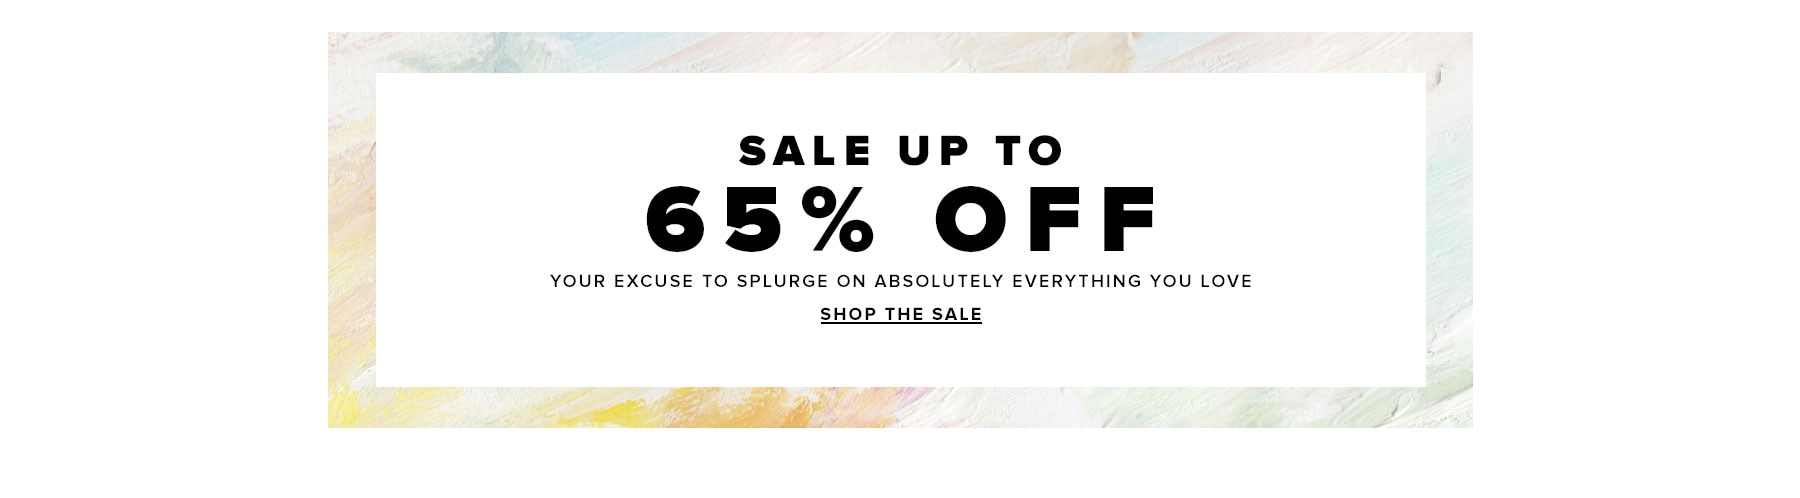 Sale up to 65% off. Your excuse to splurge on absolutely everything you love. Shop the sale.